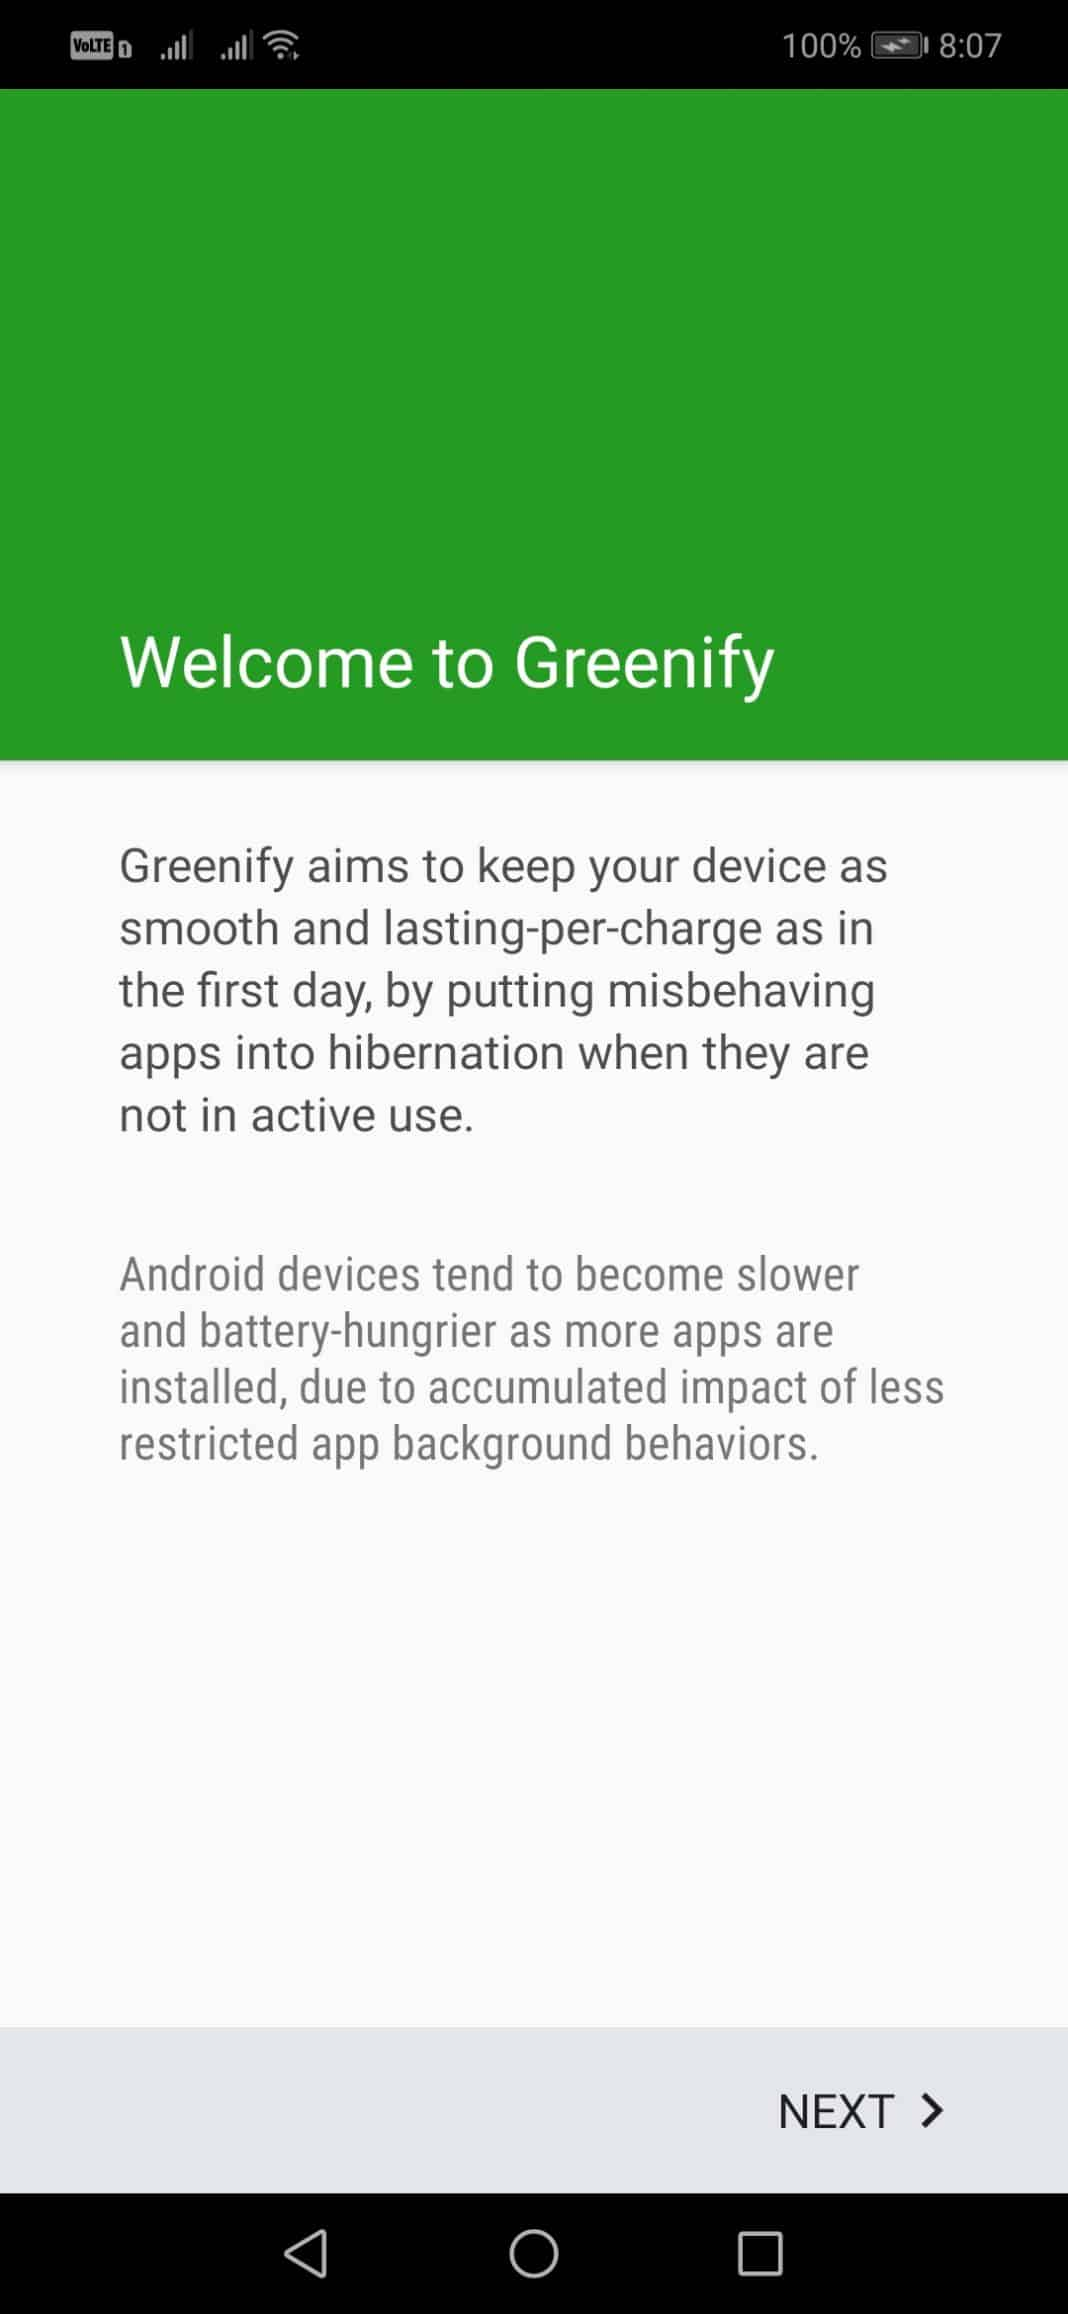 How To Setup Greenify On Android Without Root